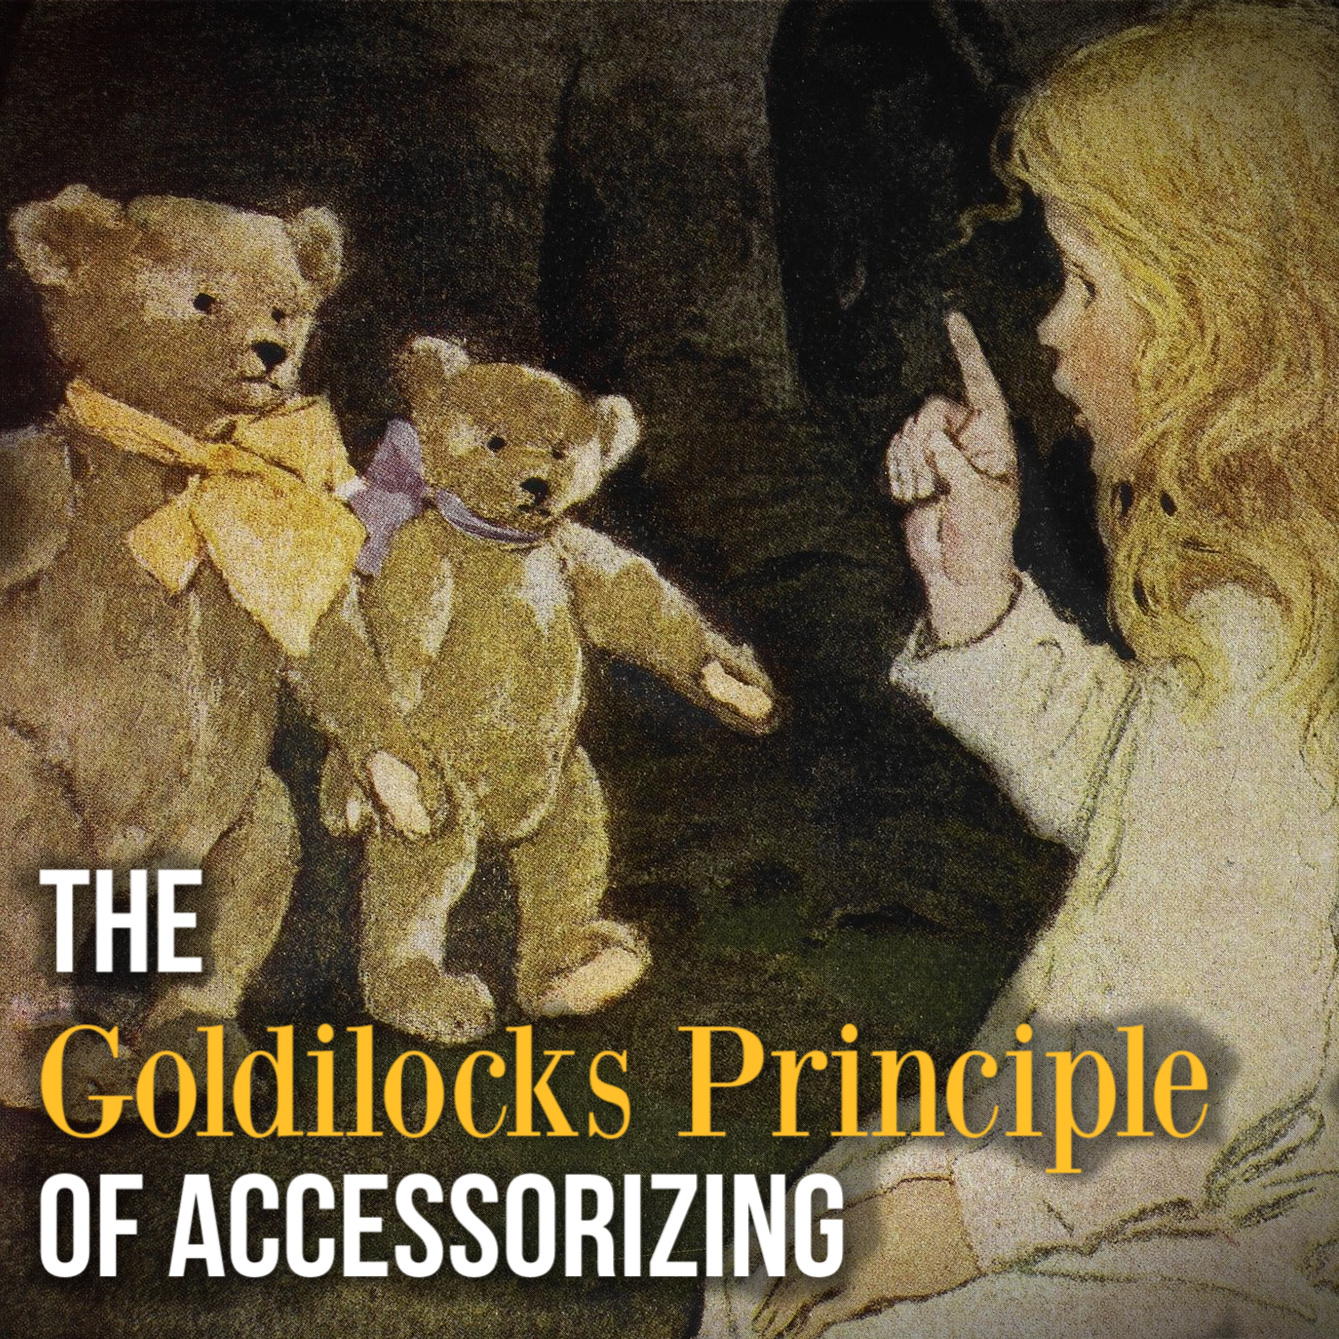 THE GOLDILOCKS PRINCIPLE OF ACCESSORIZING